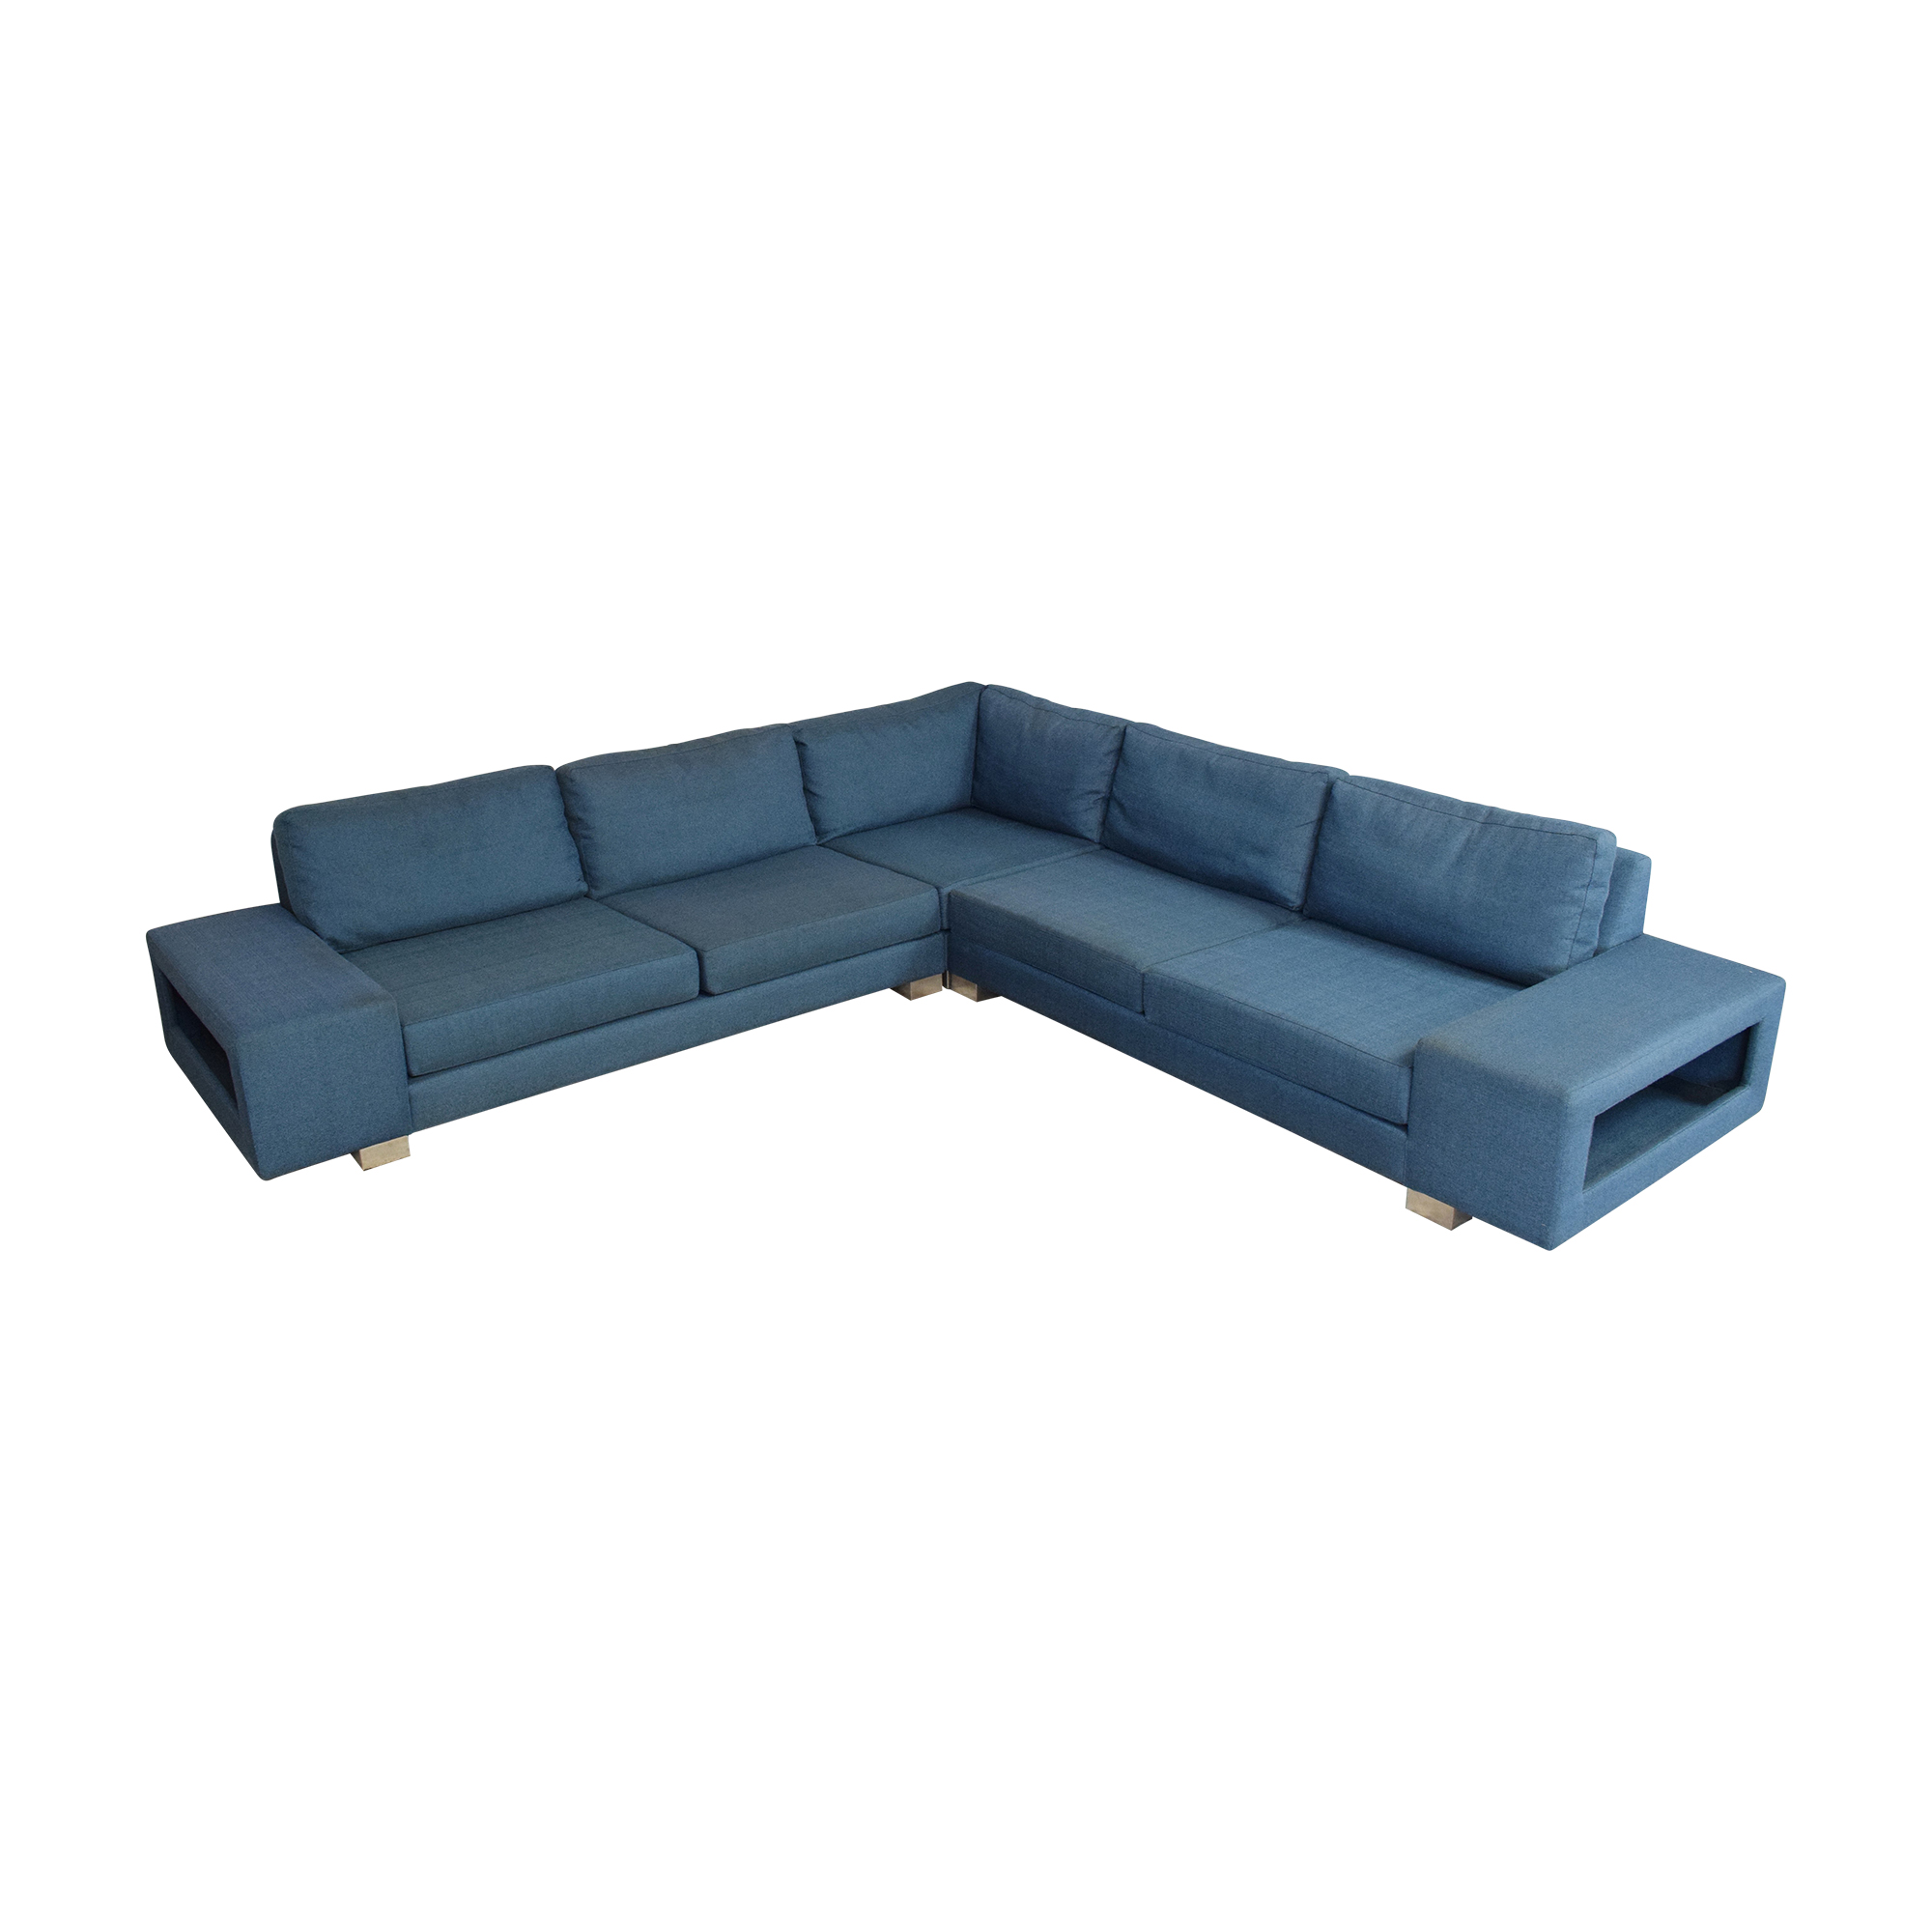 Viesso Viesso Strata Storage Sectional Sofa nyc